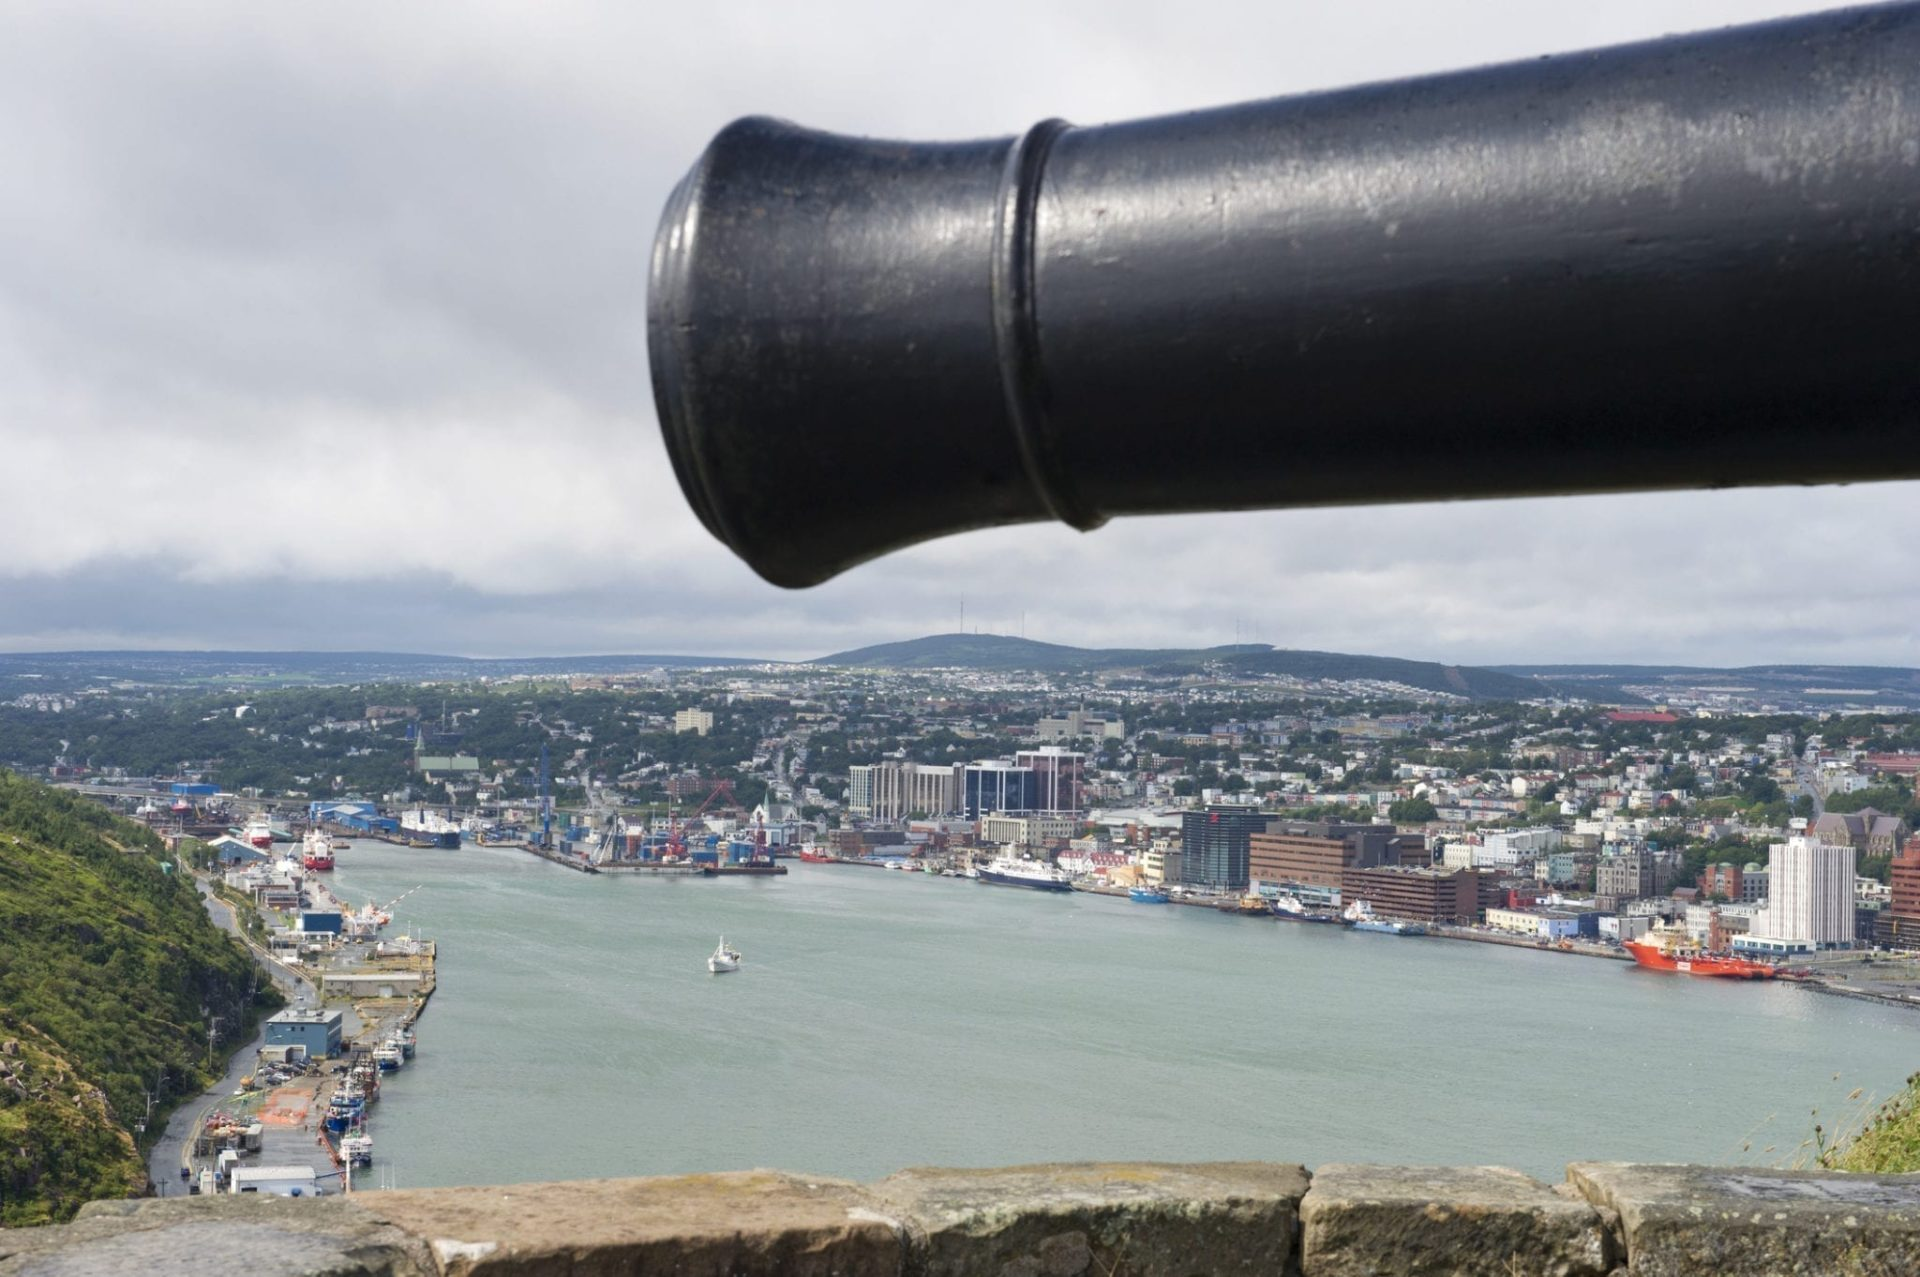 Overlooking the harbour and city of St John's